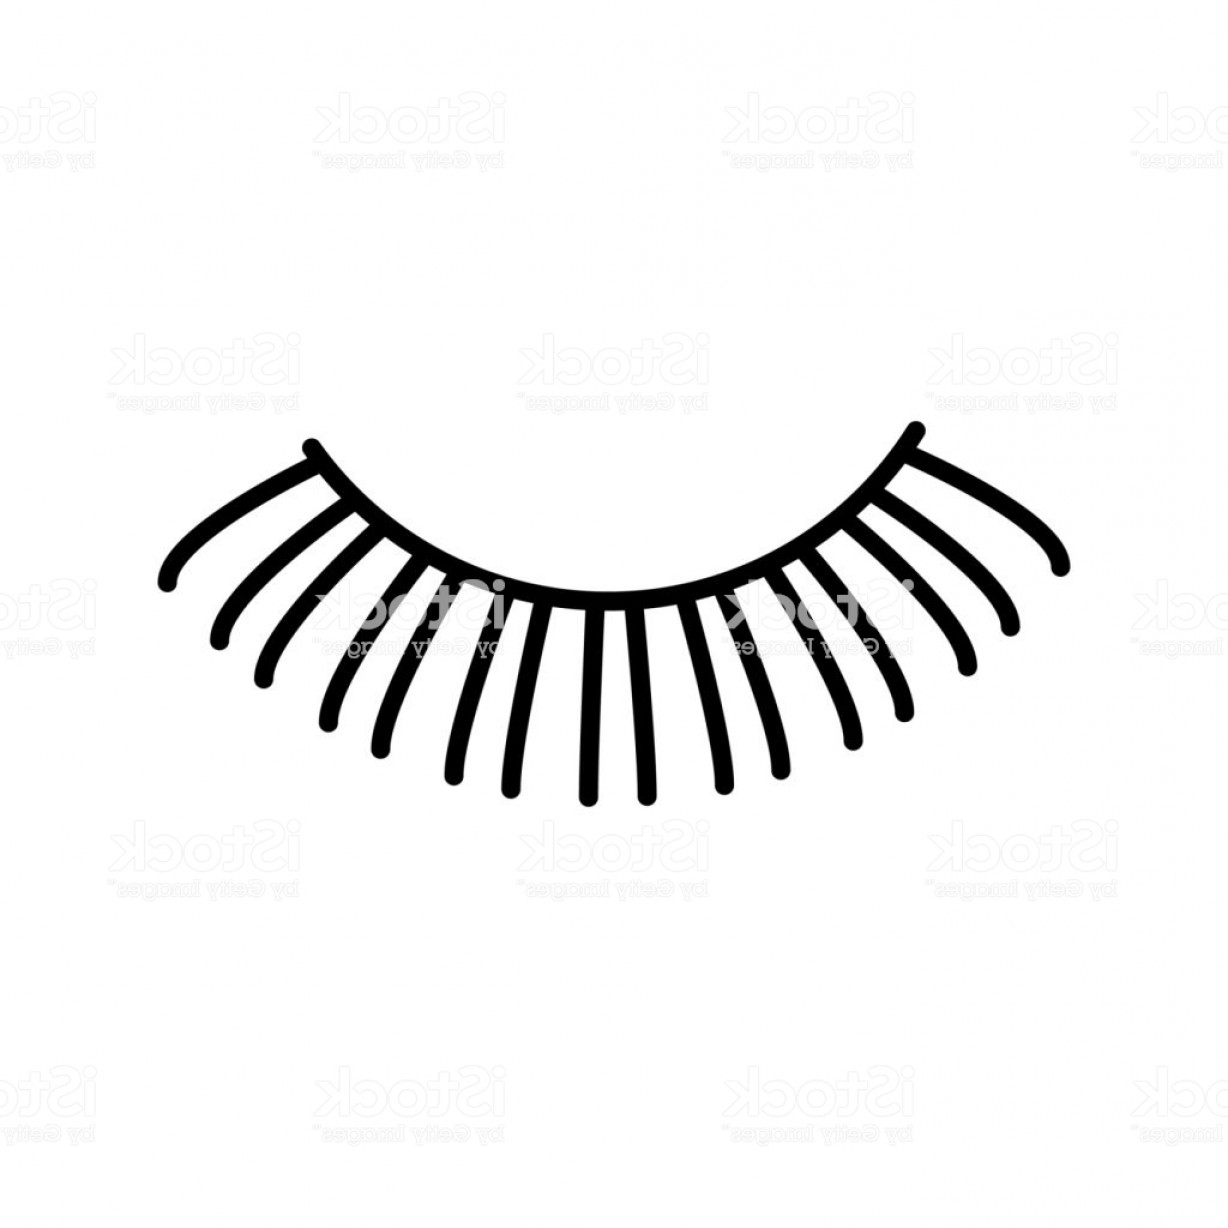 Top Eye Lashes Vector: Eyelashes Vector Line Icon Sign Illustration On Background Editable Strokes Gm